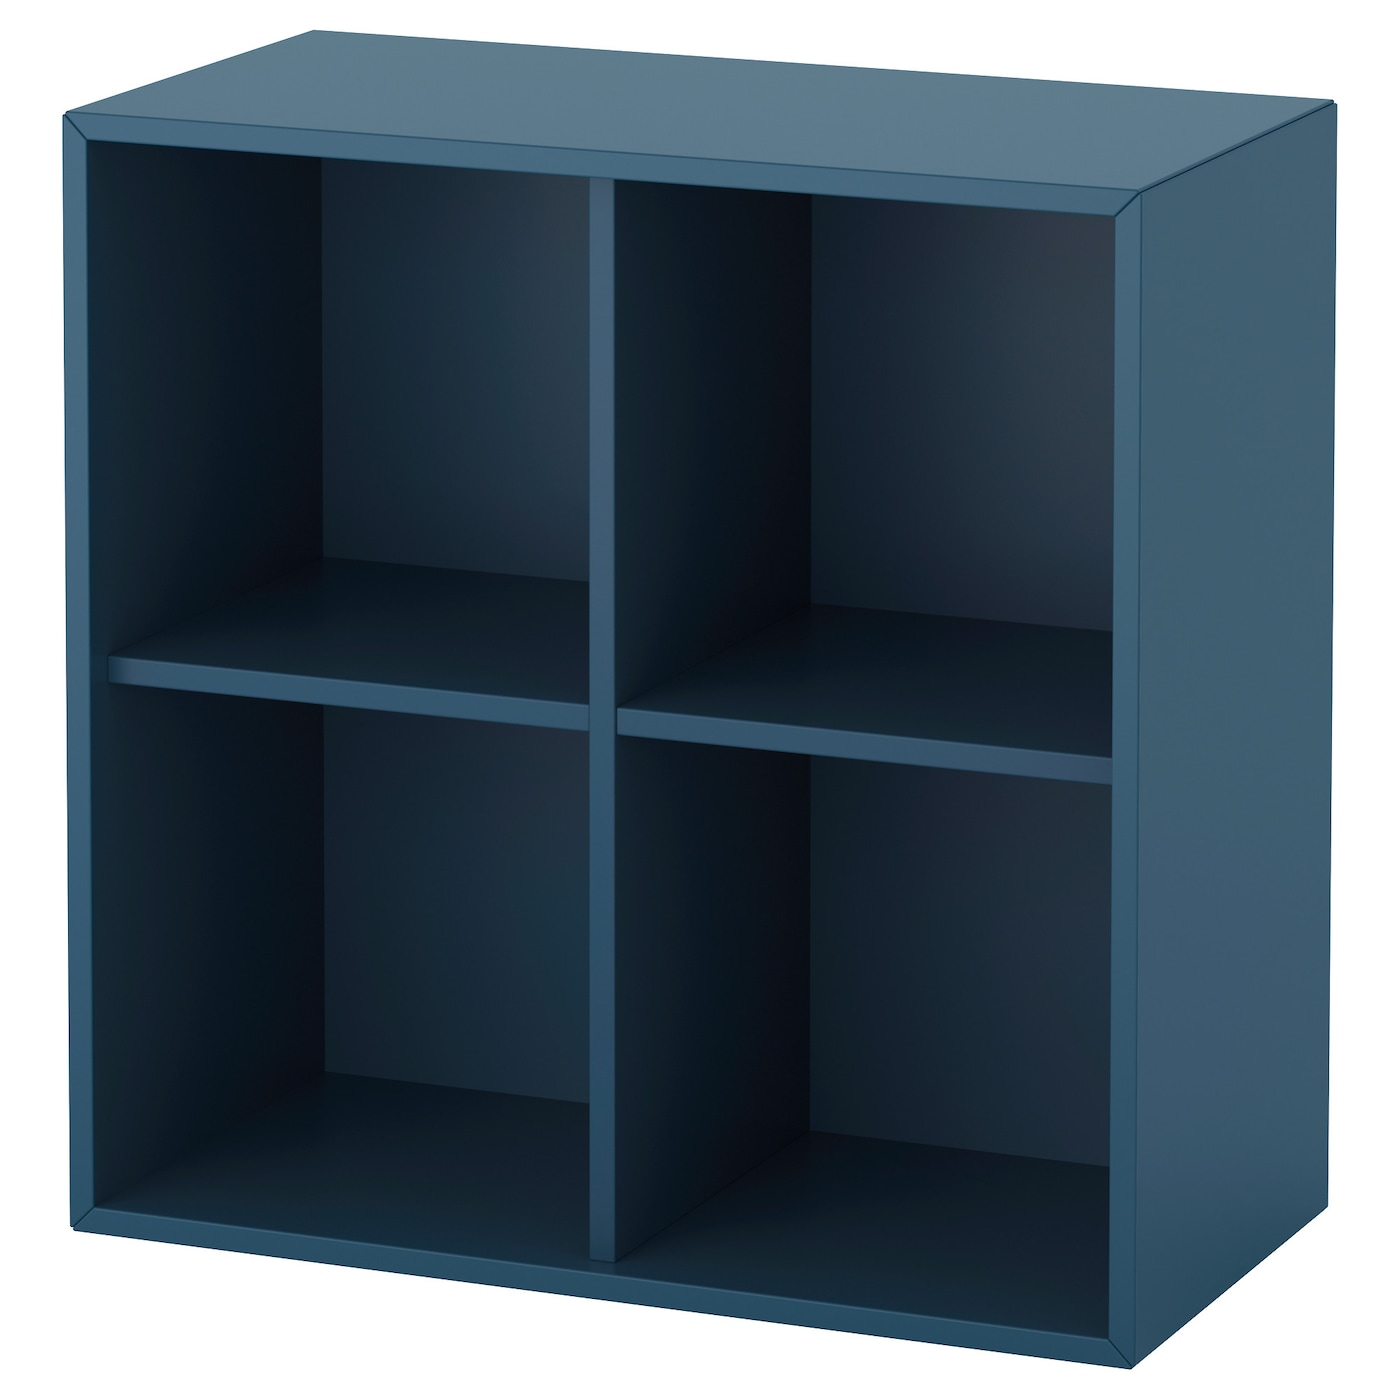 eket cabinet with 4 compartments dark blue 70x35x70 cm ikea ForMeuble 4 Cases Ikea